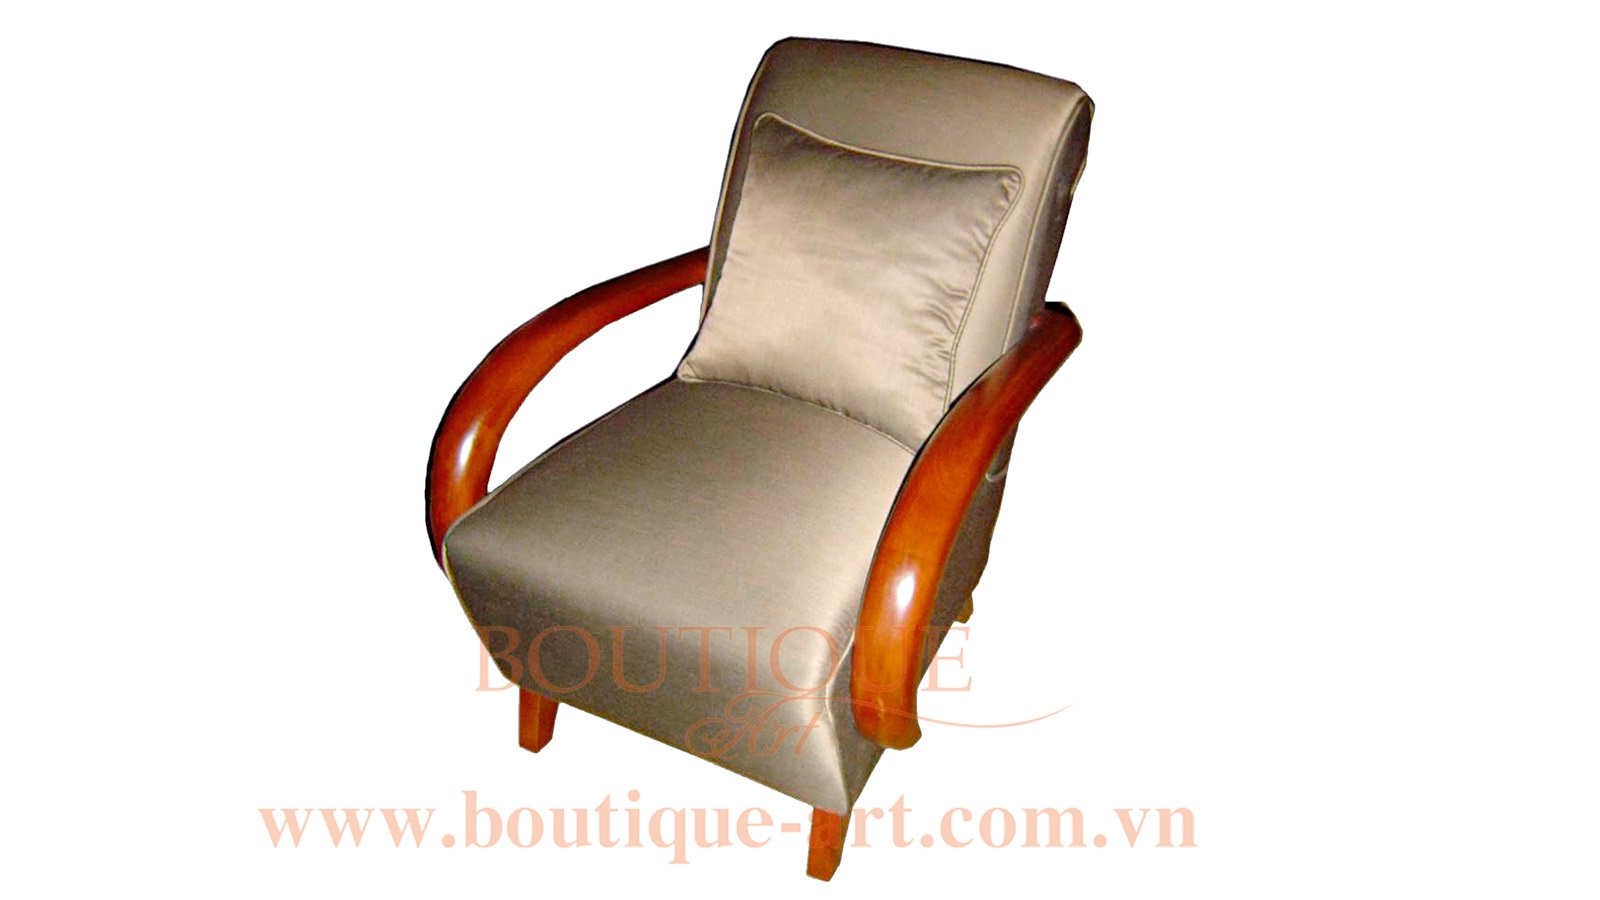 ARMCHAIR TAY CONG - B.A 0512